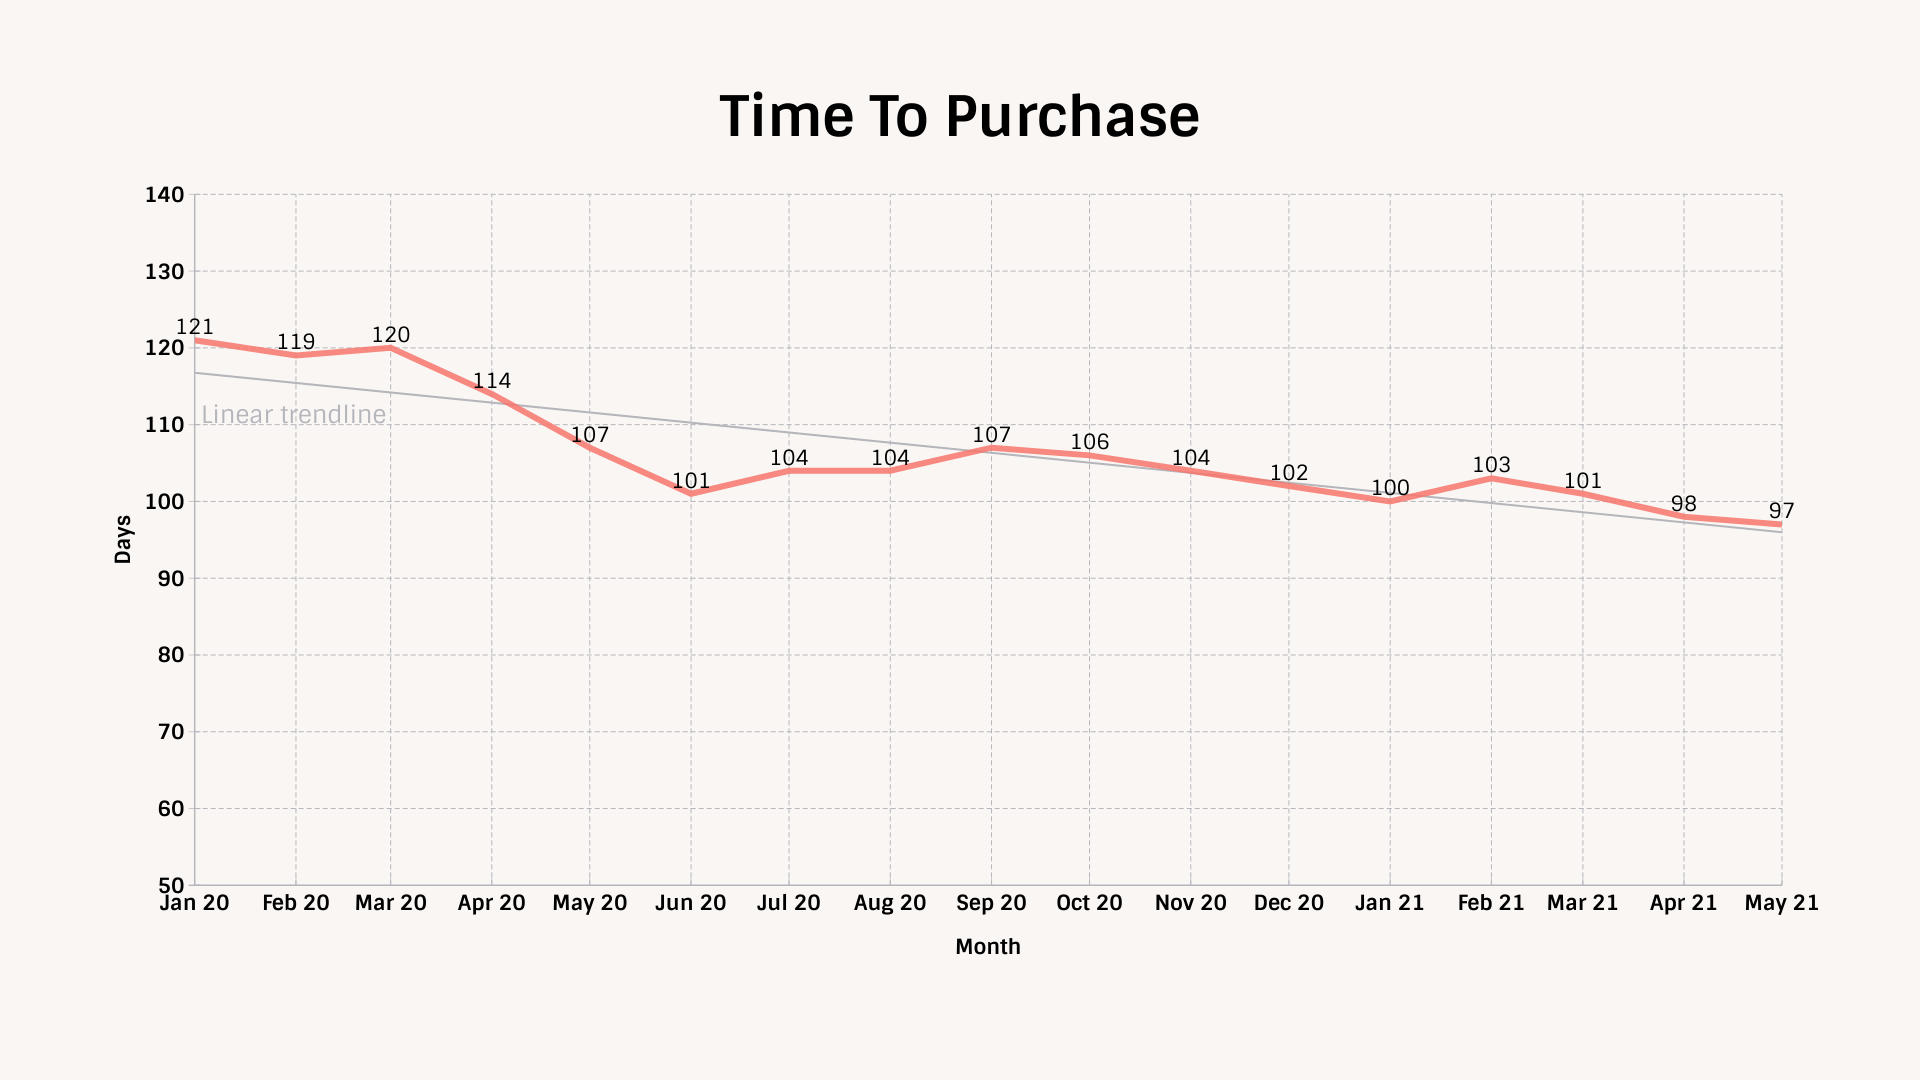 TIPP Poll Automotive Demand Index Time To Purchase - Chart